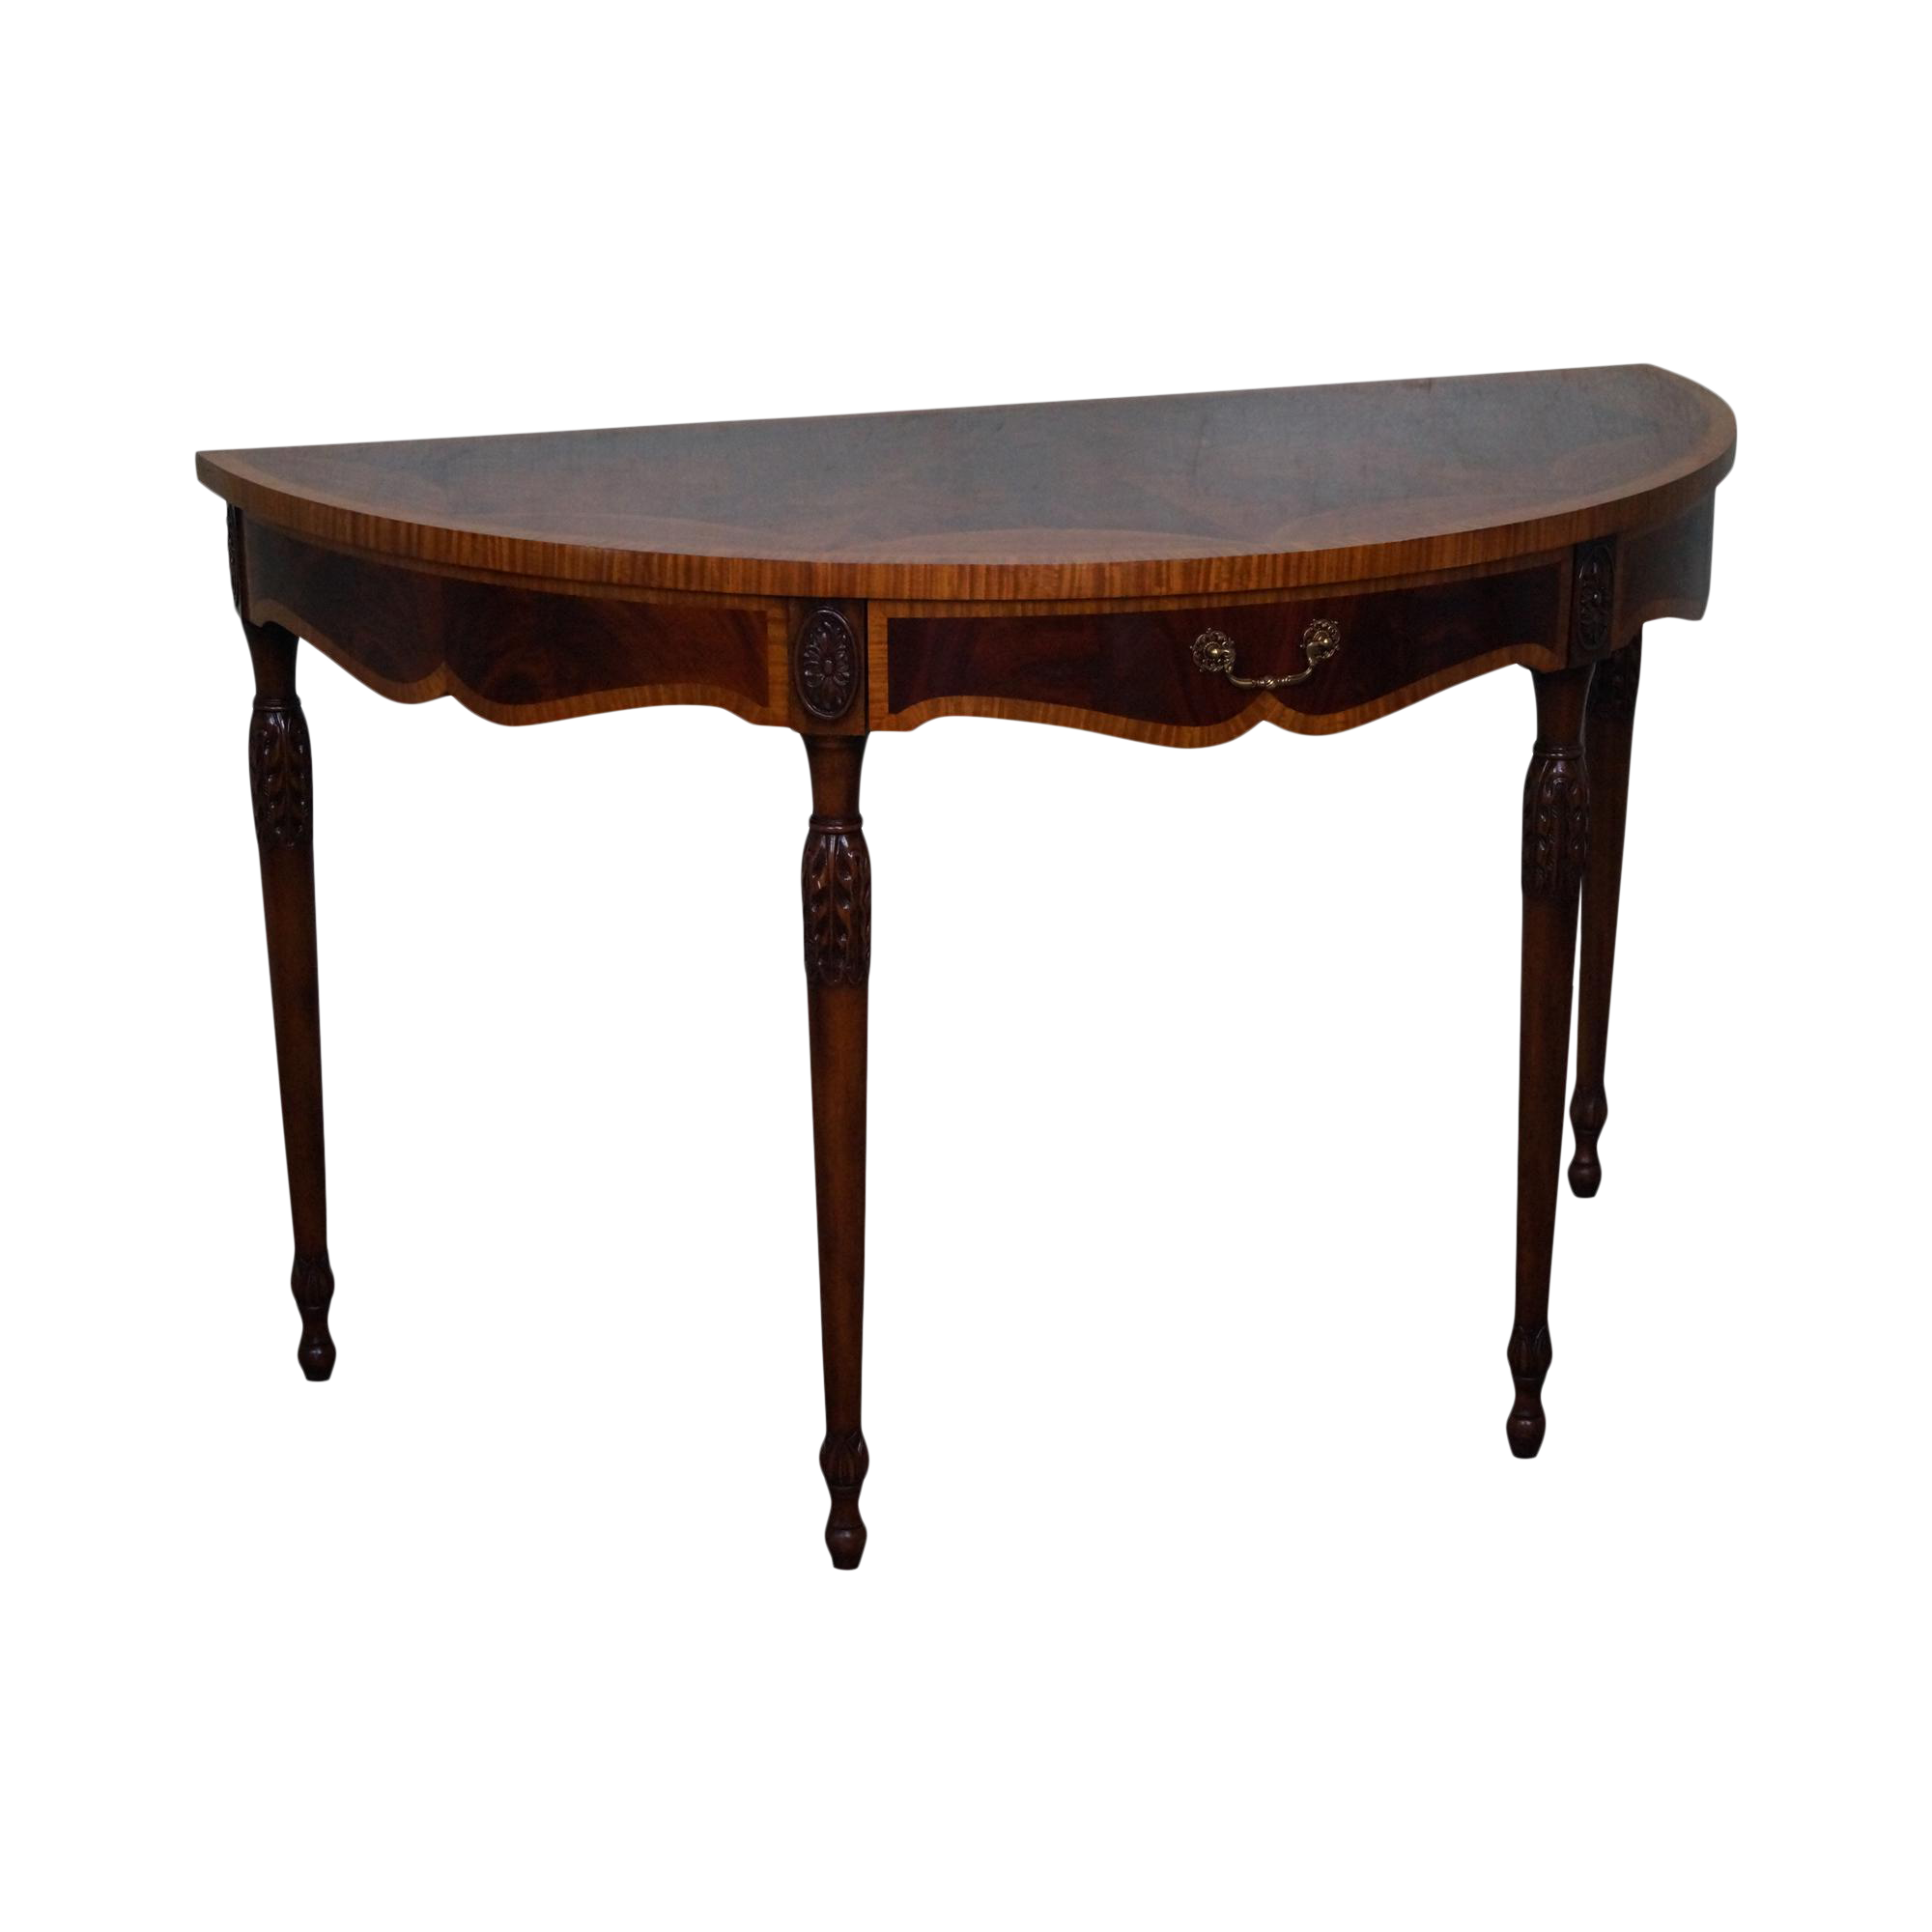 Maitland smith flame mahogany demilune console table chairish geotapseo Images